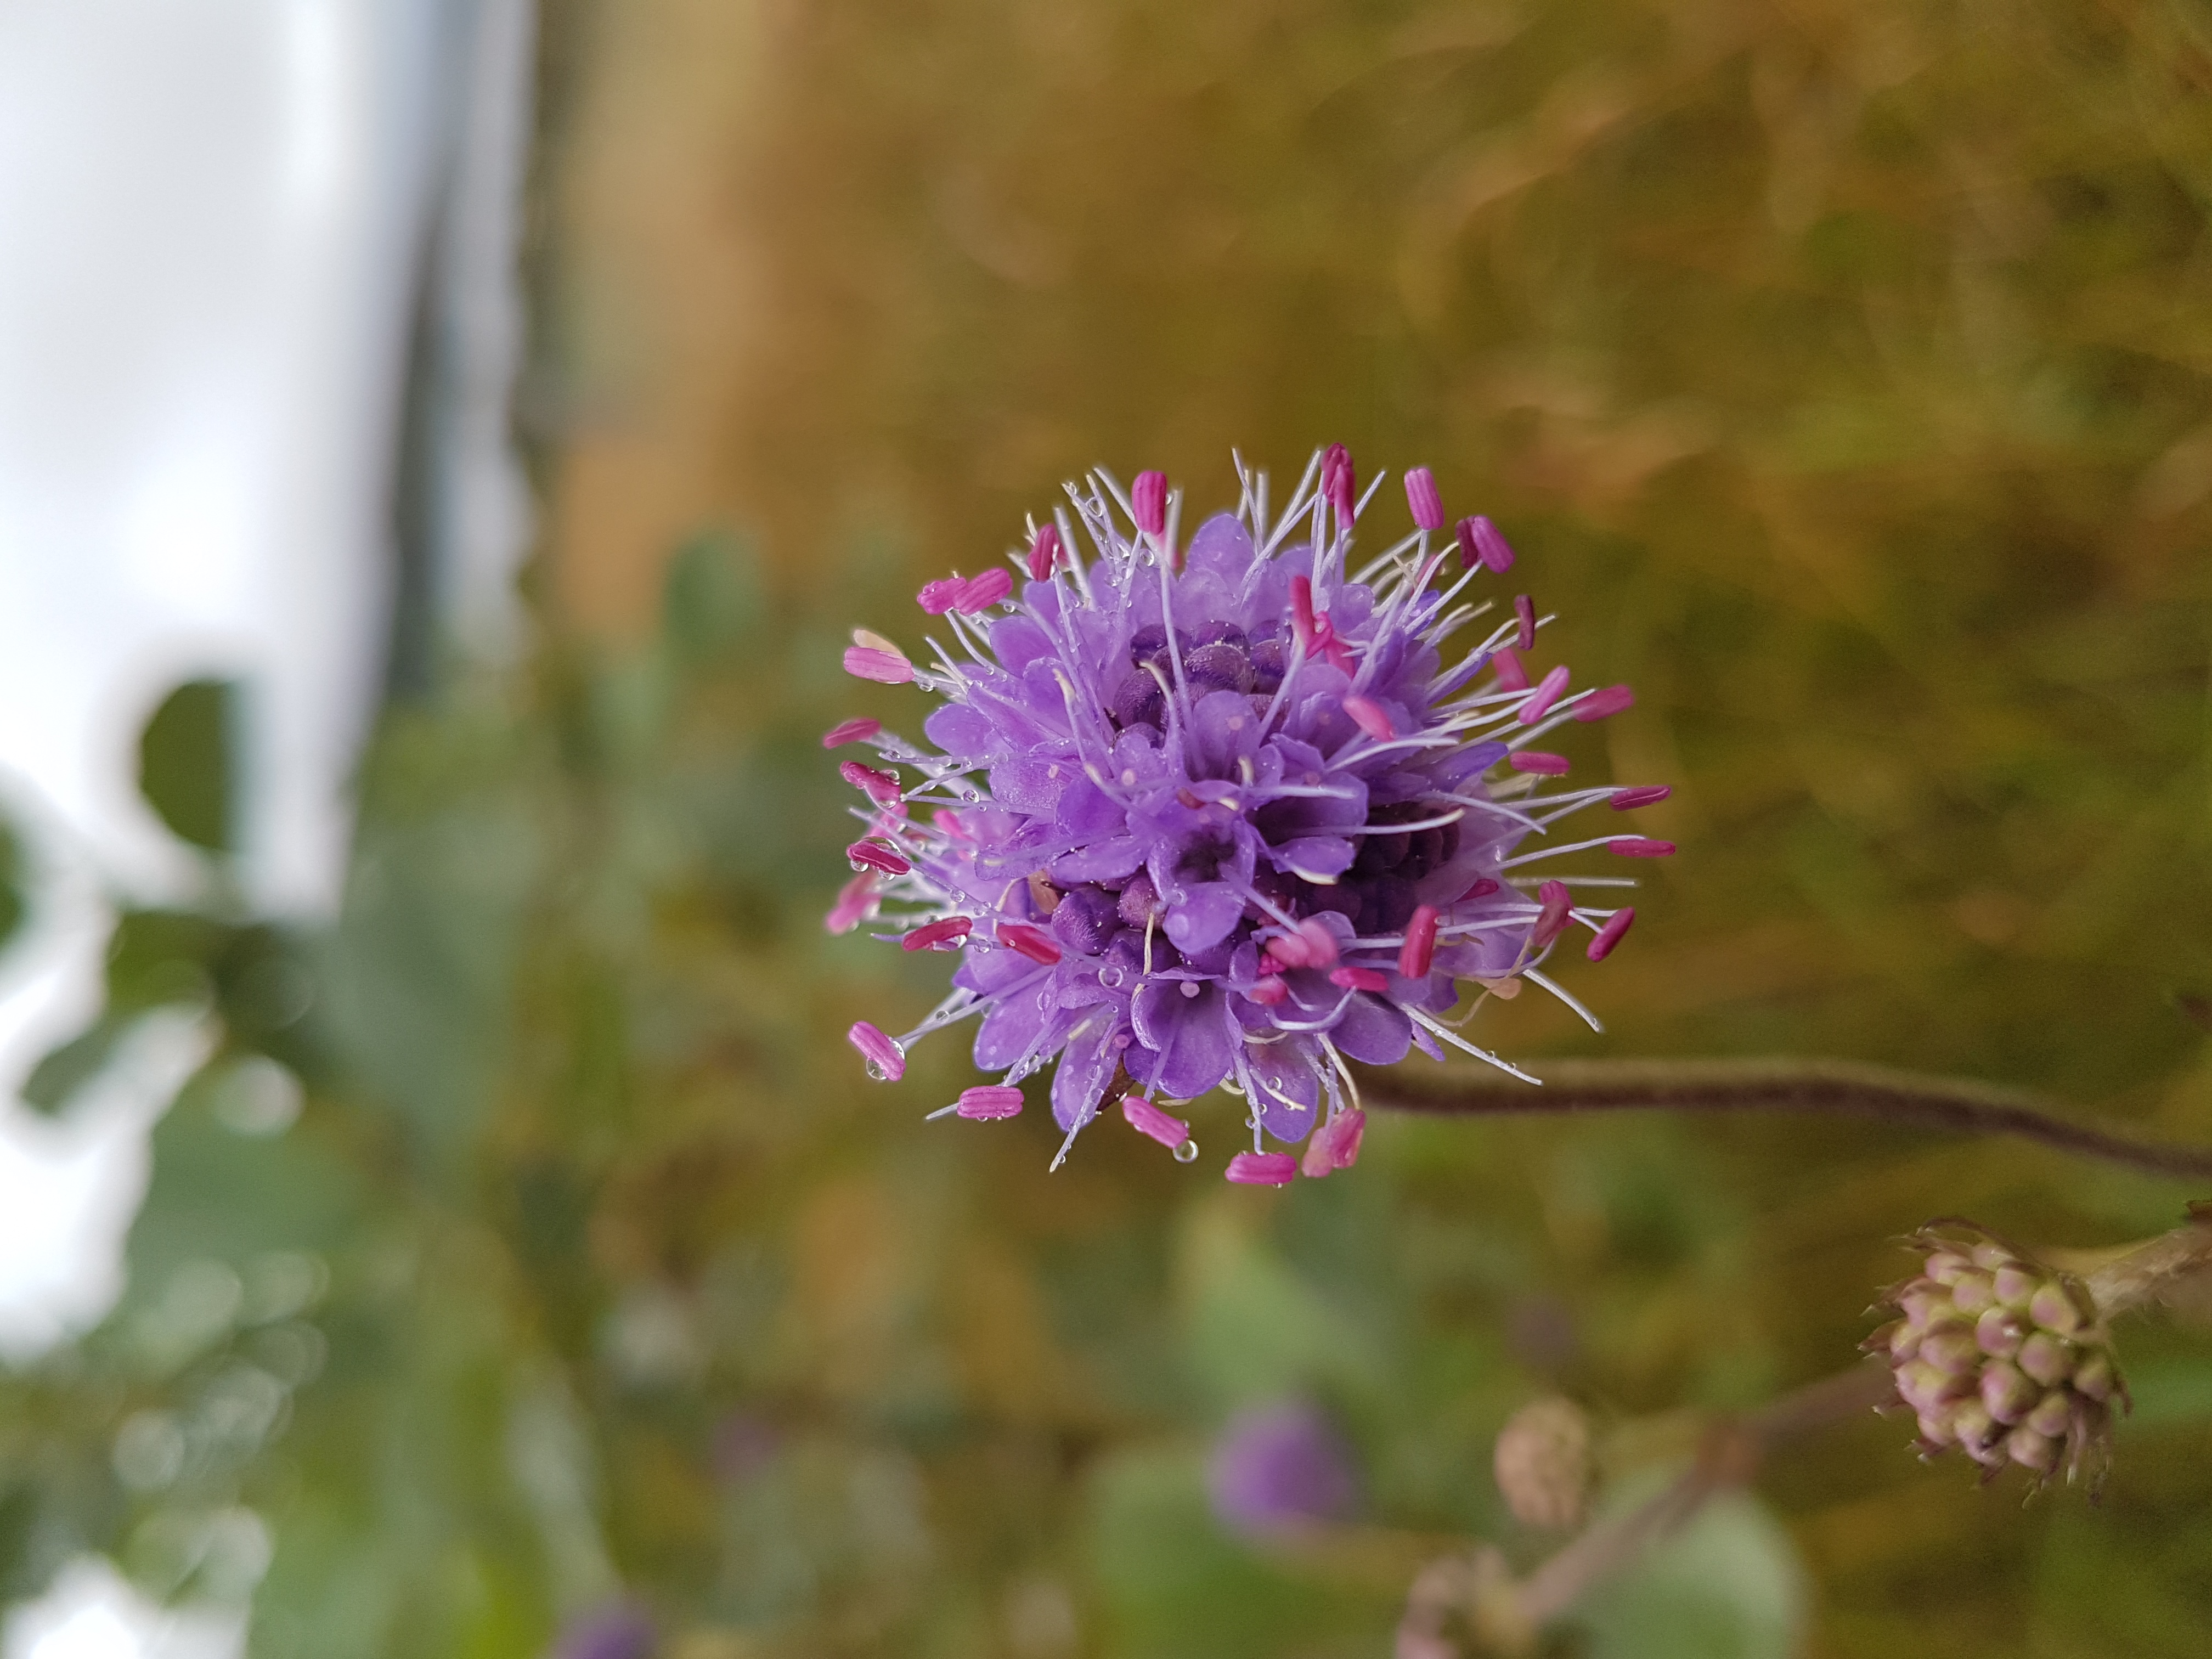 Devils-bit Scabious, Wildflower, Nature